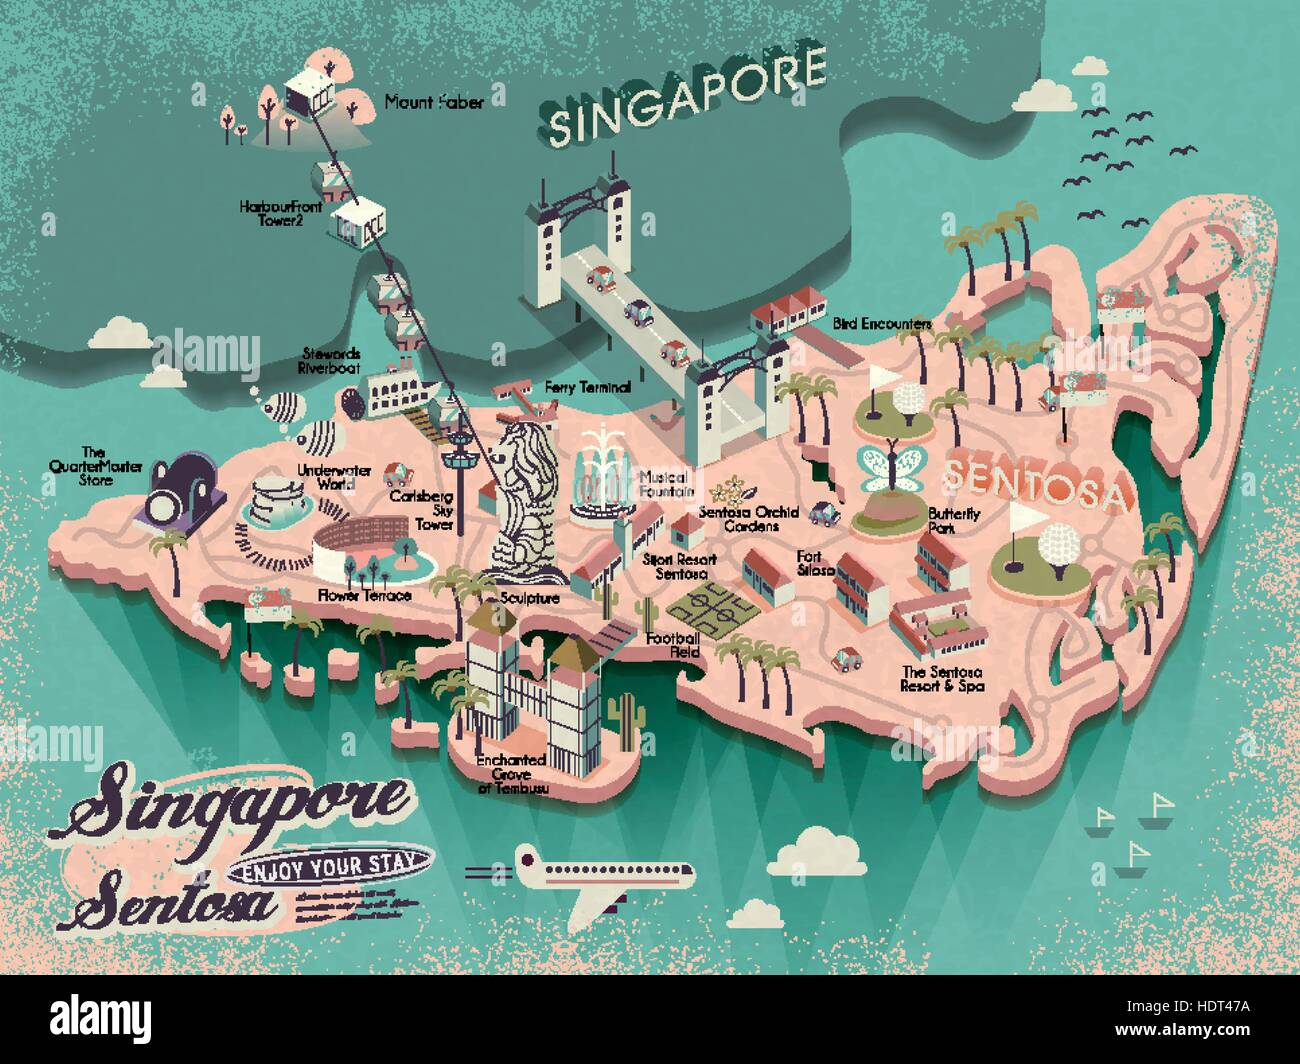 Vectors D Map Of Singapore Stock Vector Art Illustration - Singapore map vector